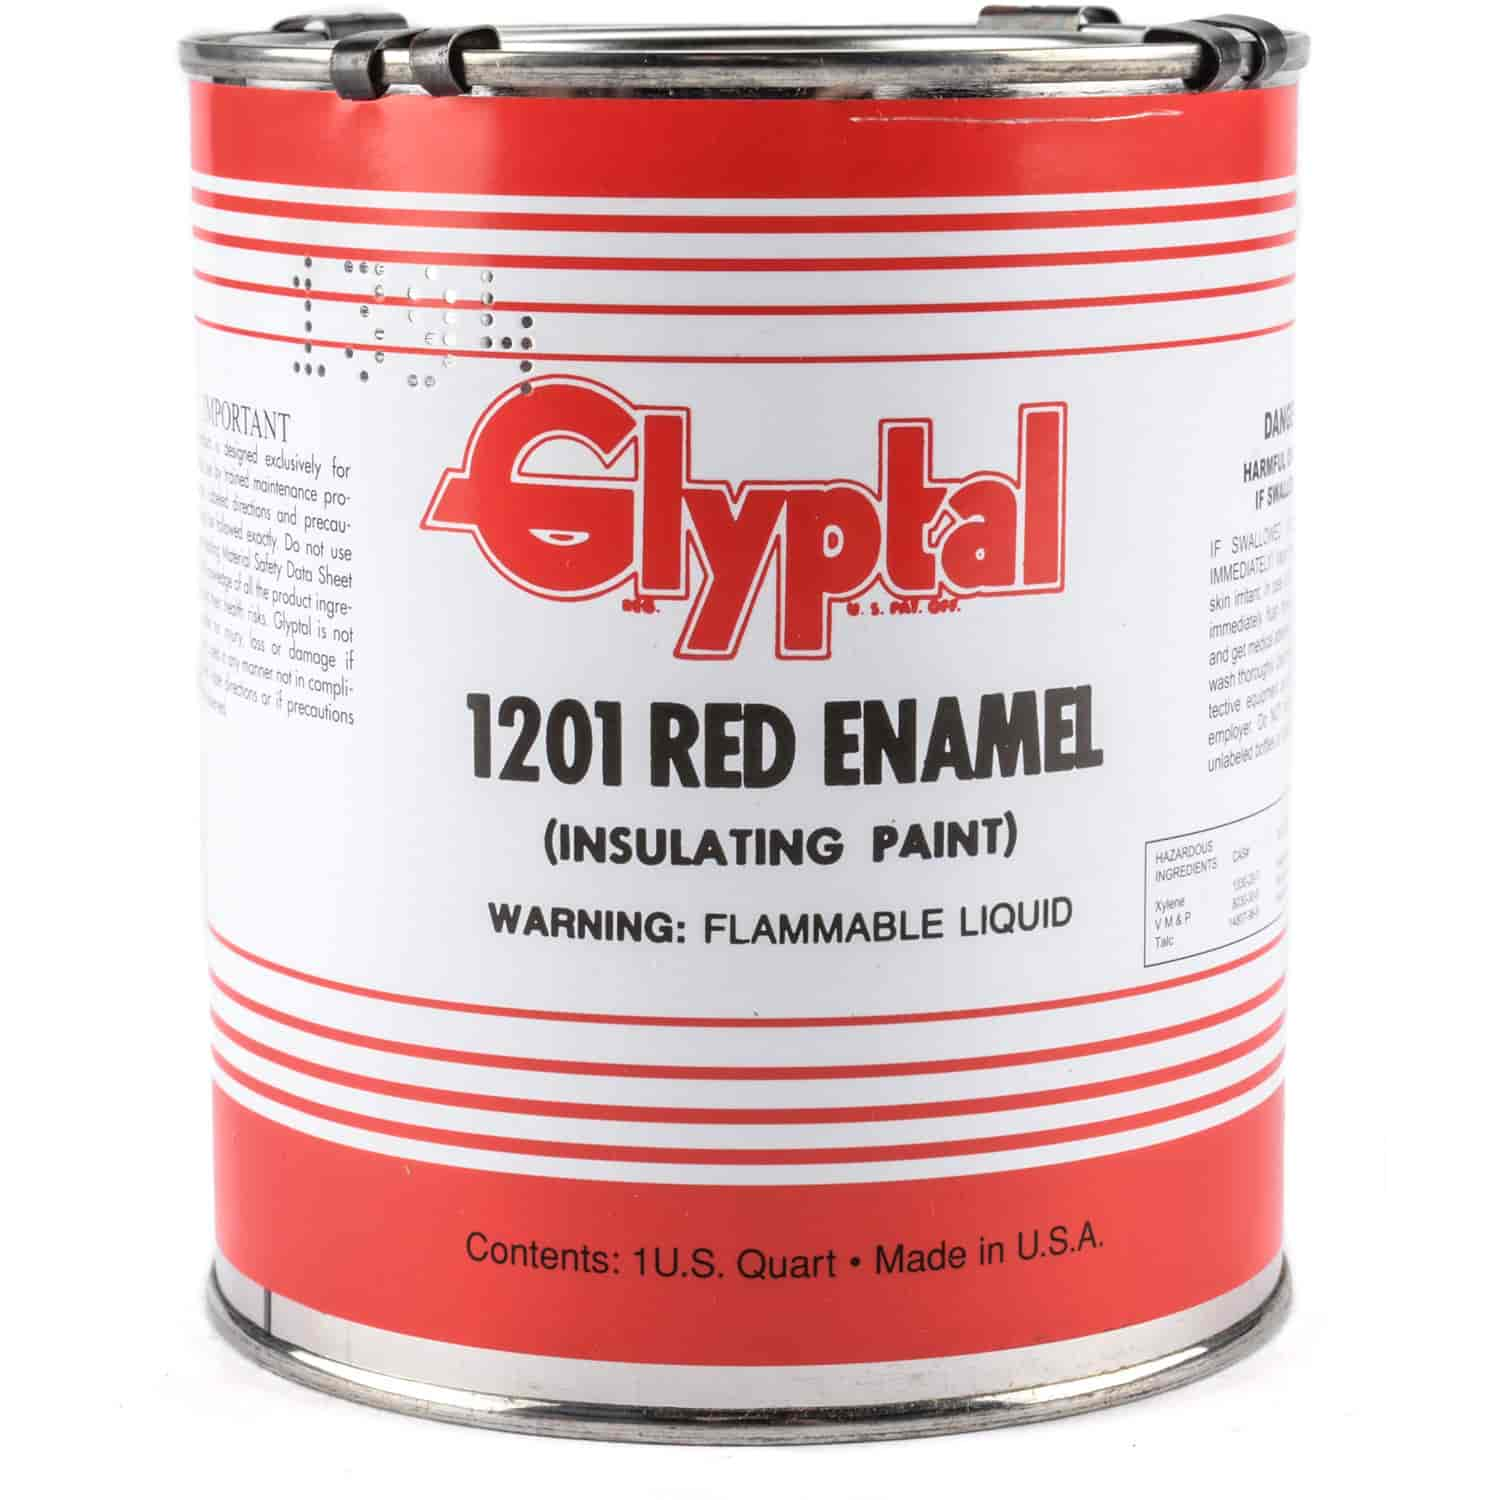 Where To Buy Glyptal Paint